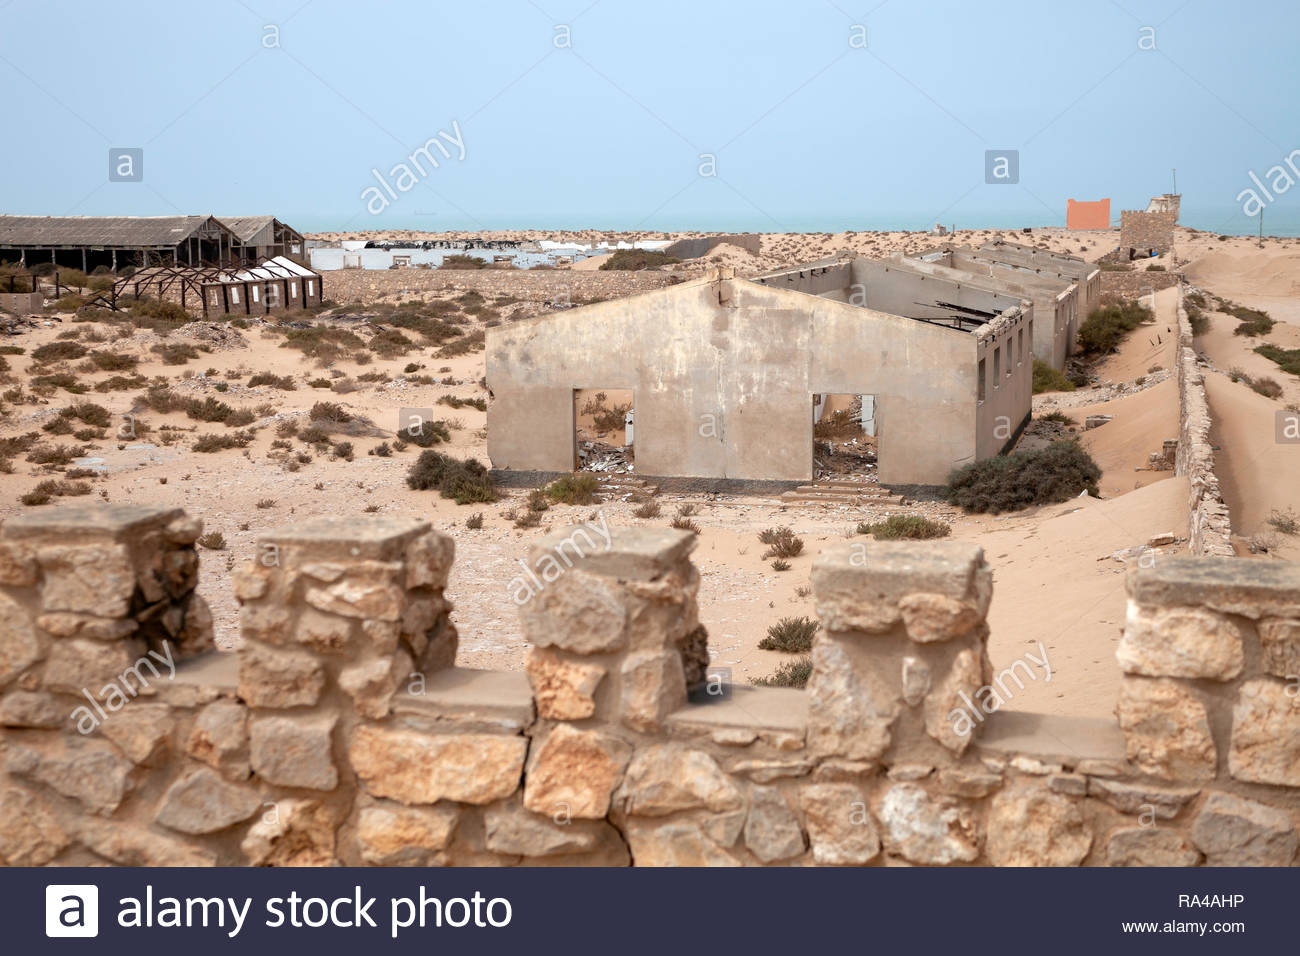 Buildings inside old abandoned spanish fort - Stock Image